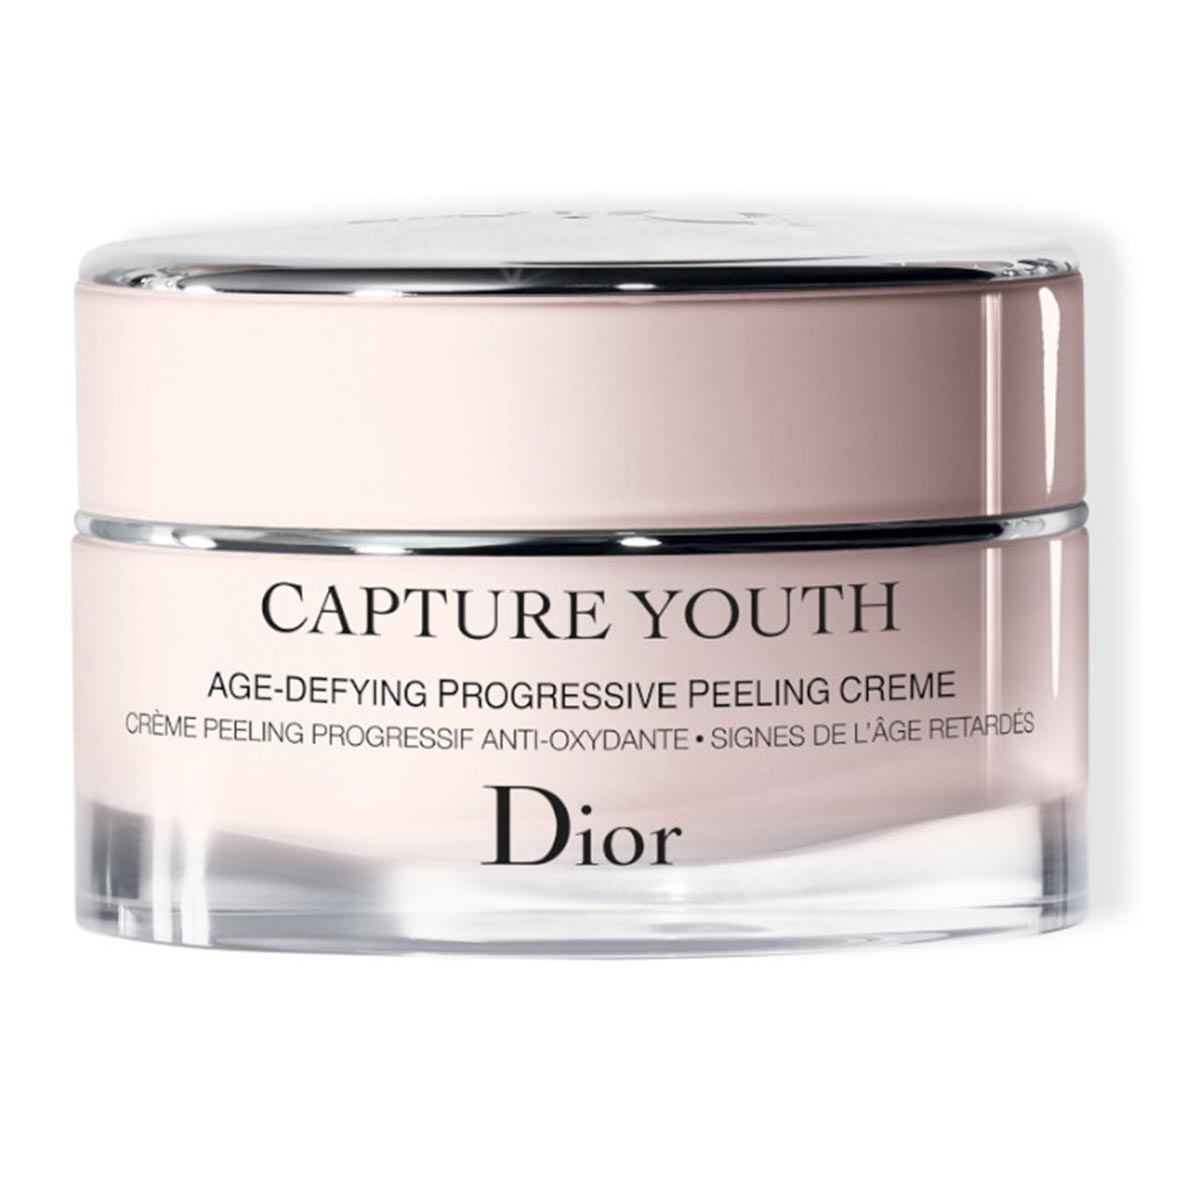 Dior capture youth age defying peeling creme 50ml